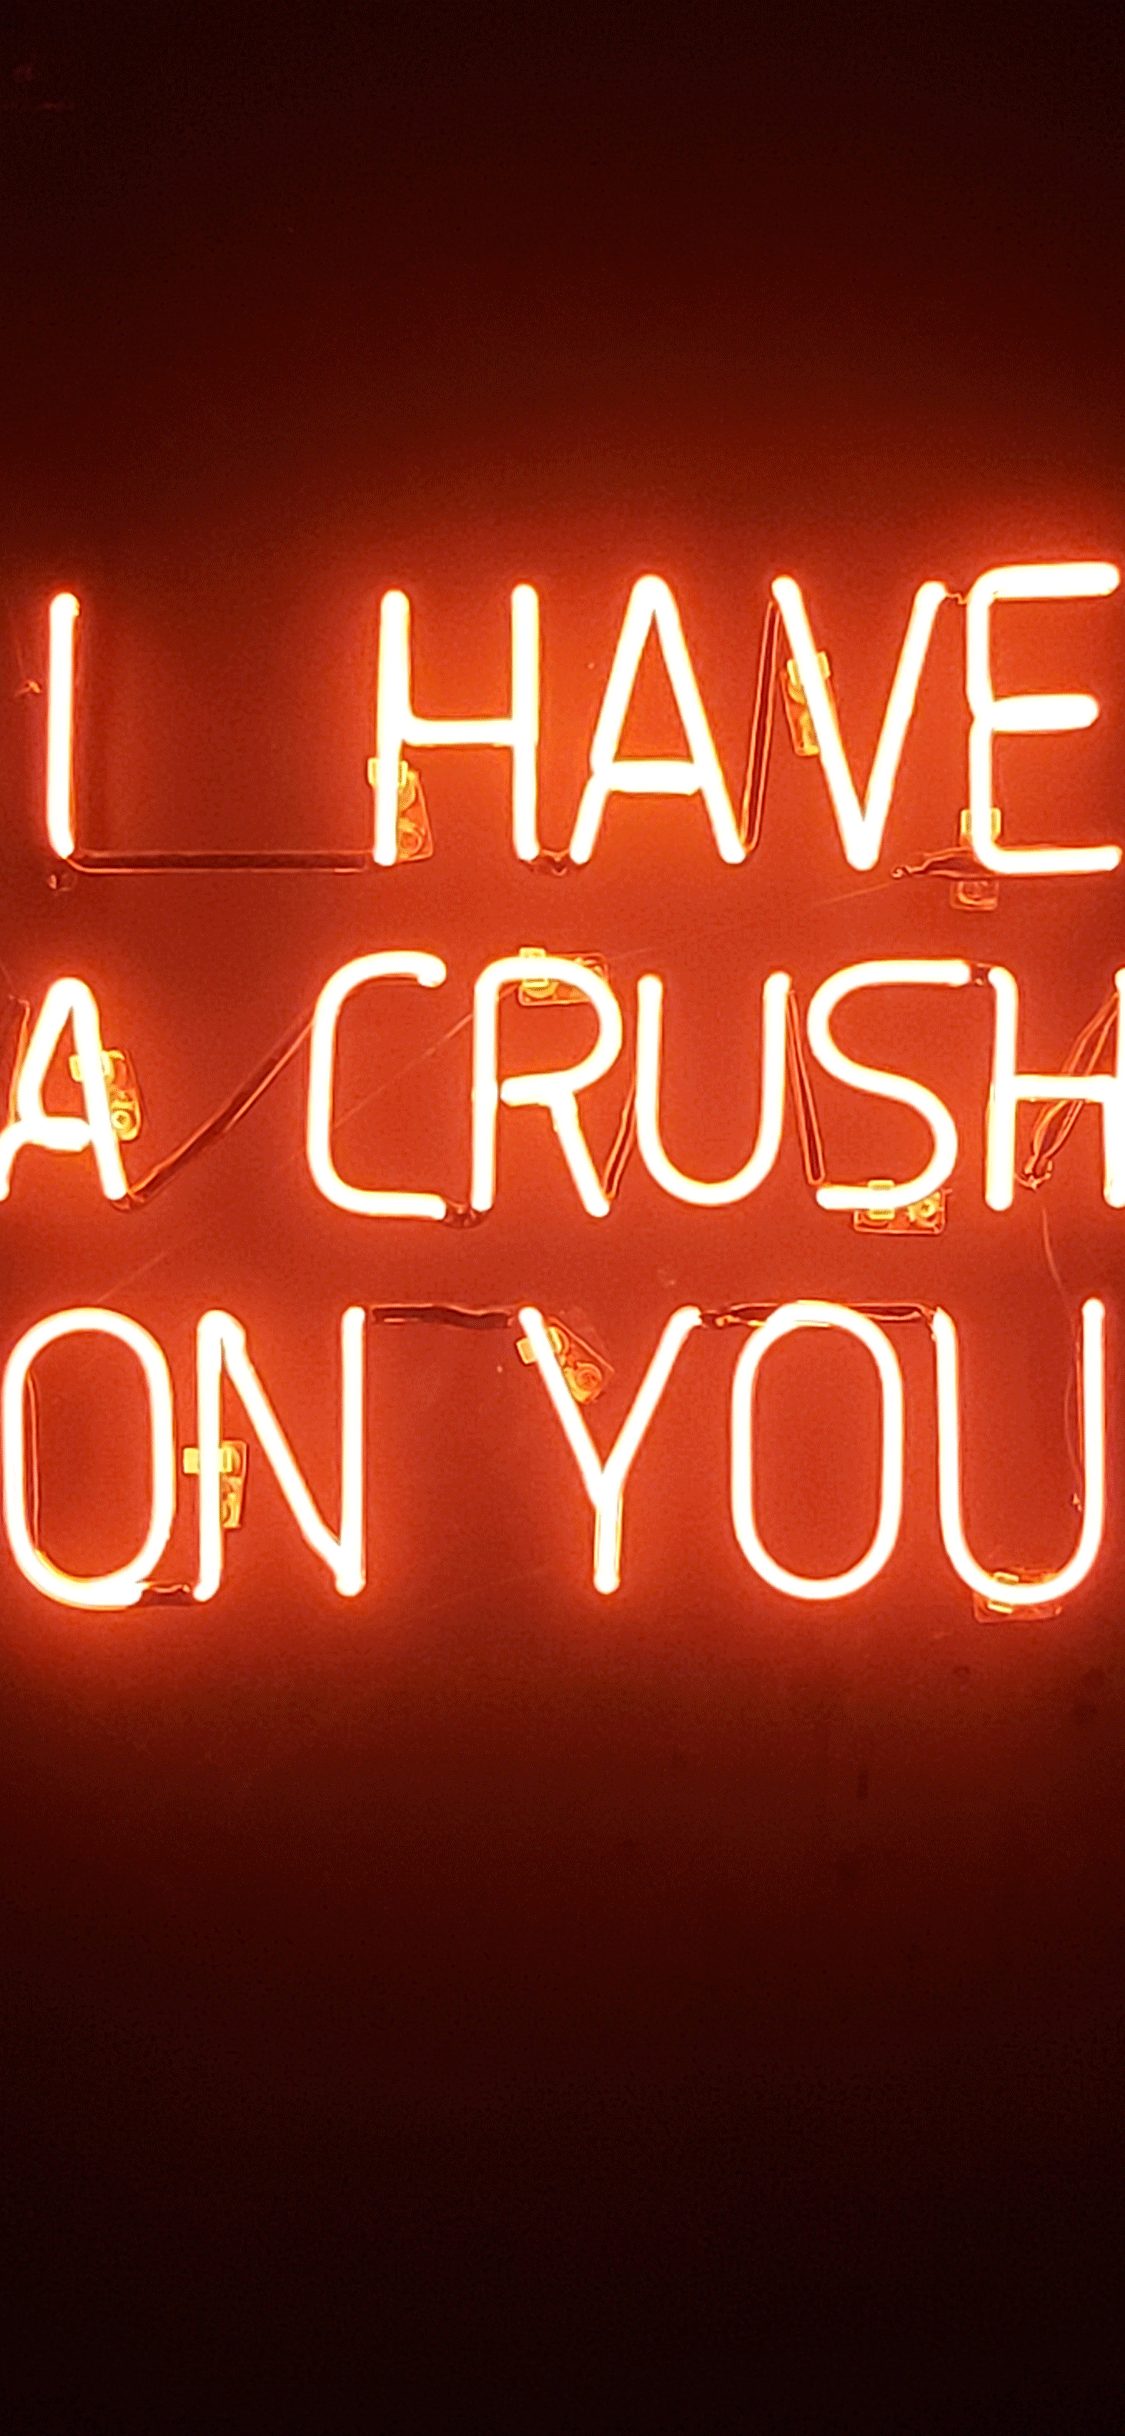 iPhone wallpaper neon sign crush Fonds d'écran iPhone du 31/08/2018